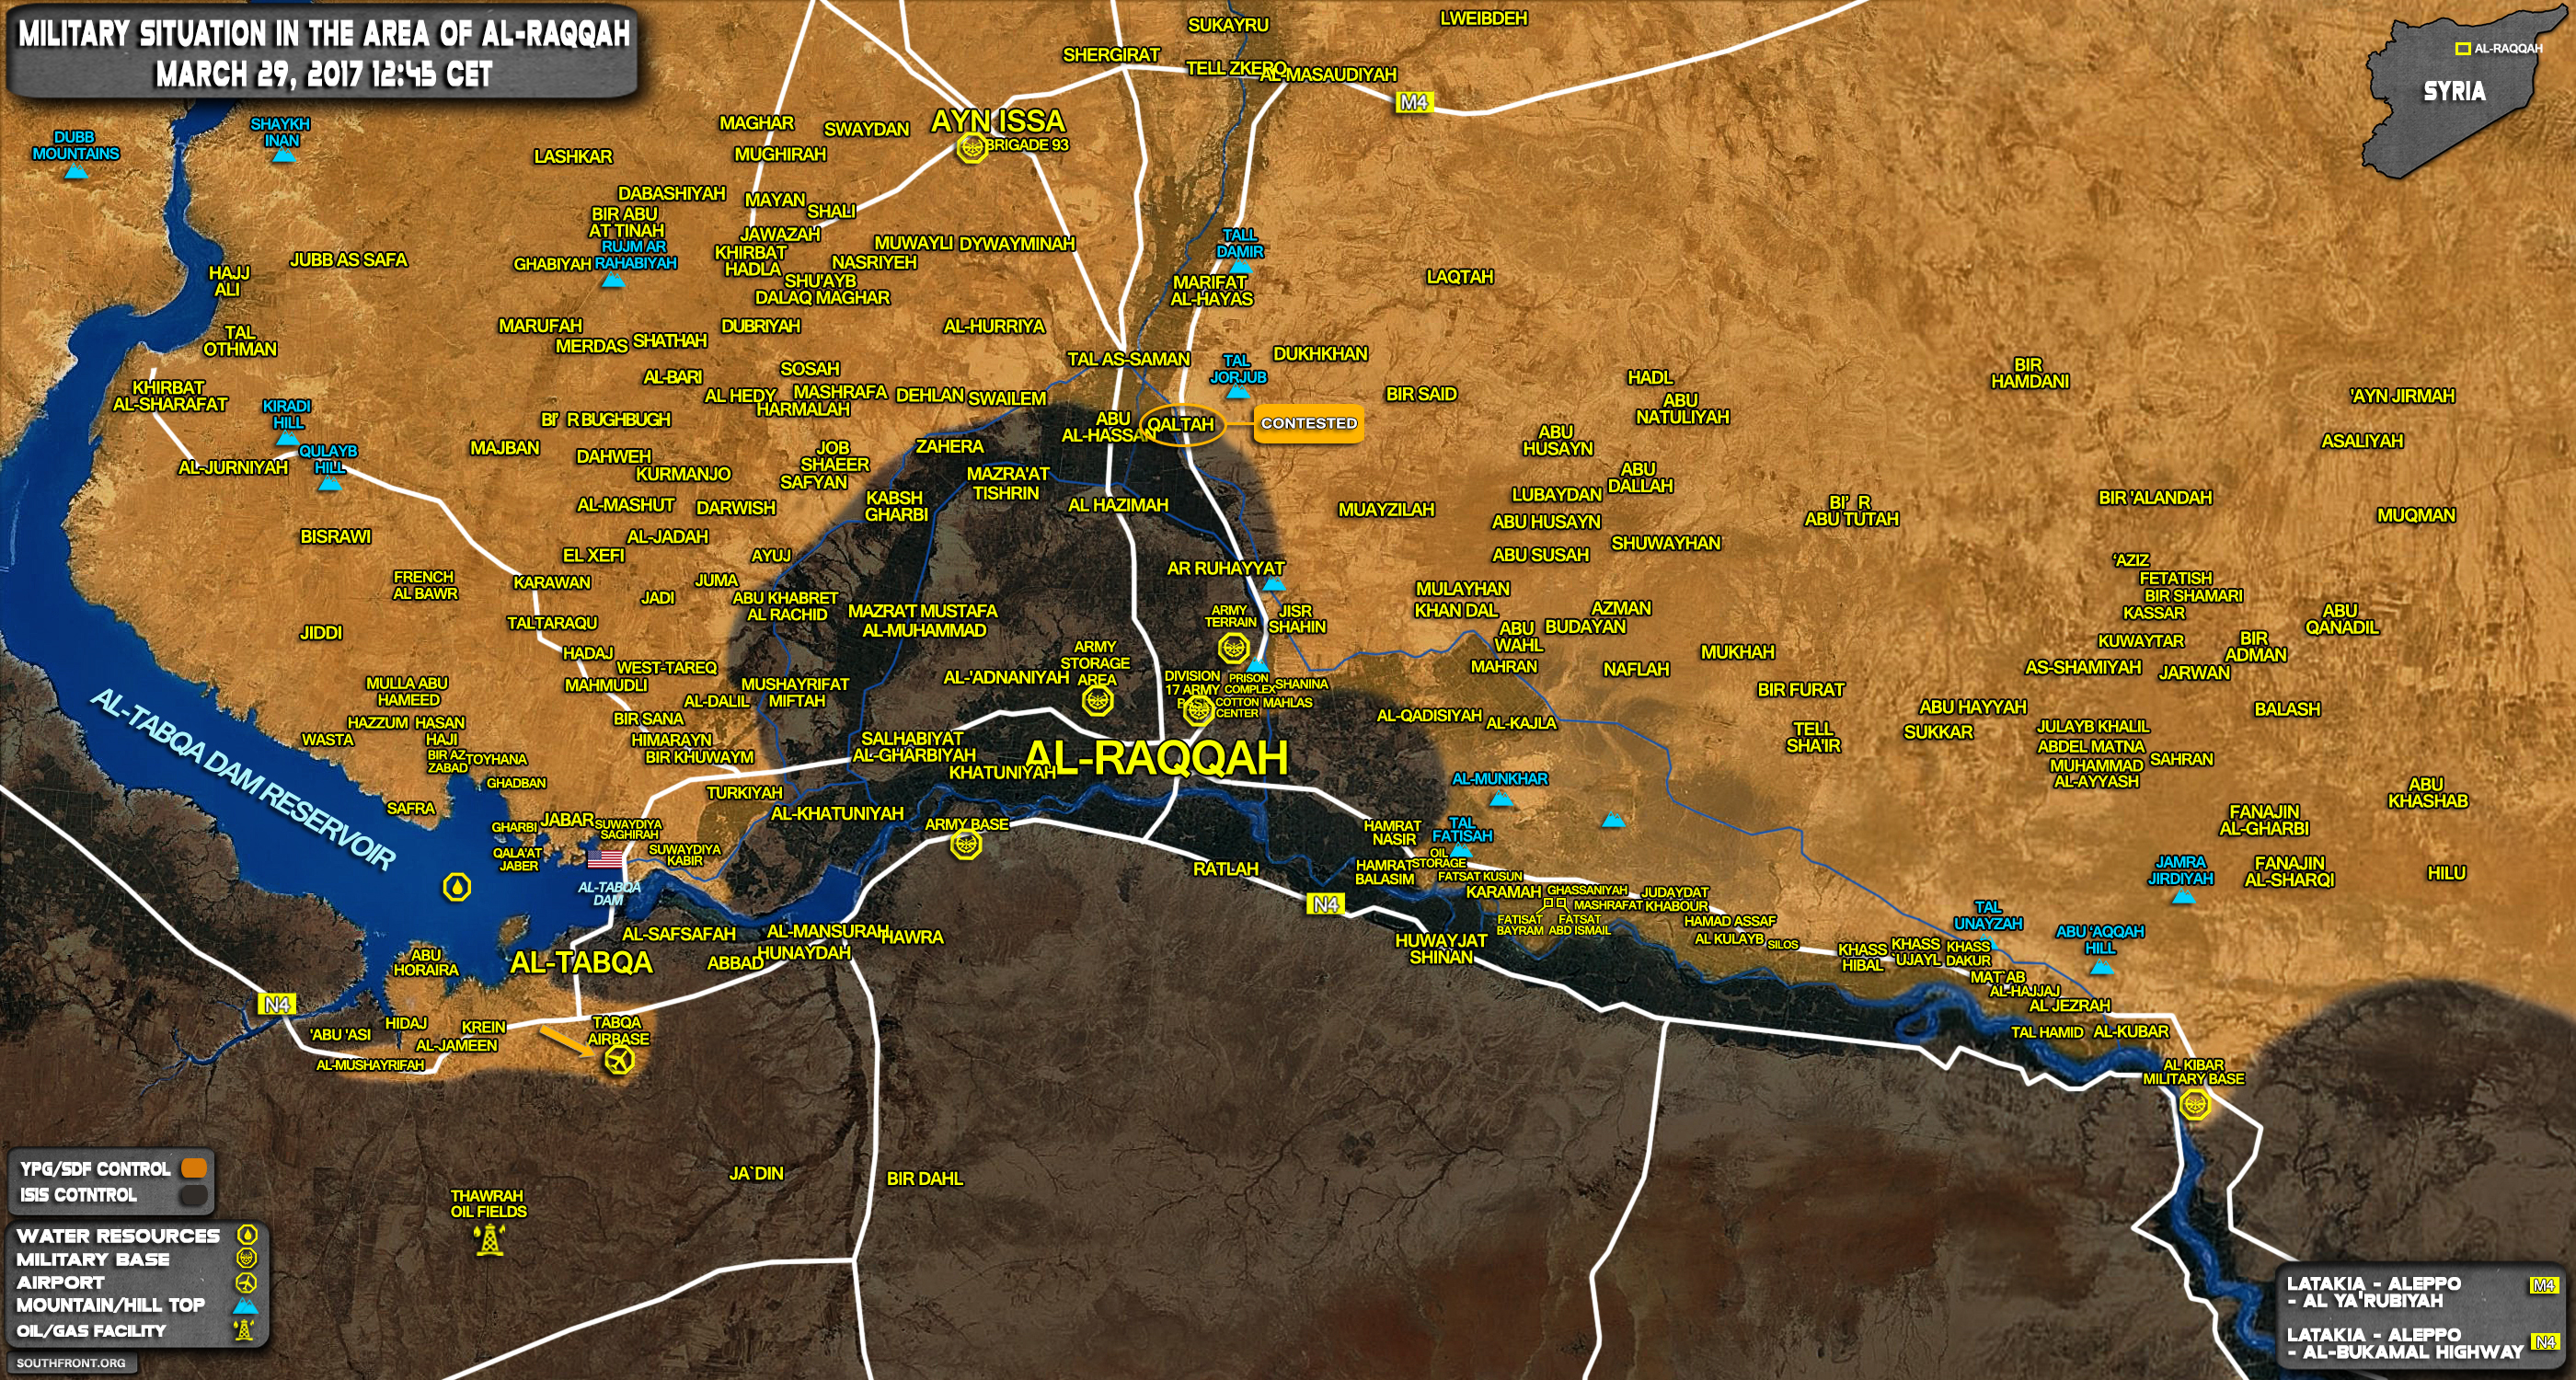 Military Situation In Area Of Raqqah On March 29, 2017 (Syria Map Update)